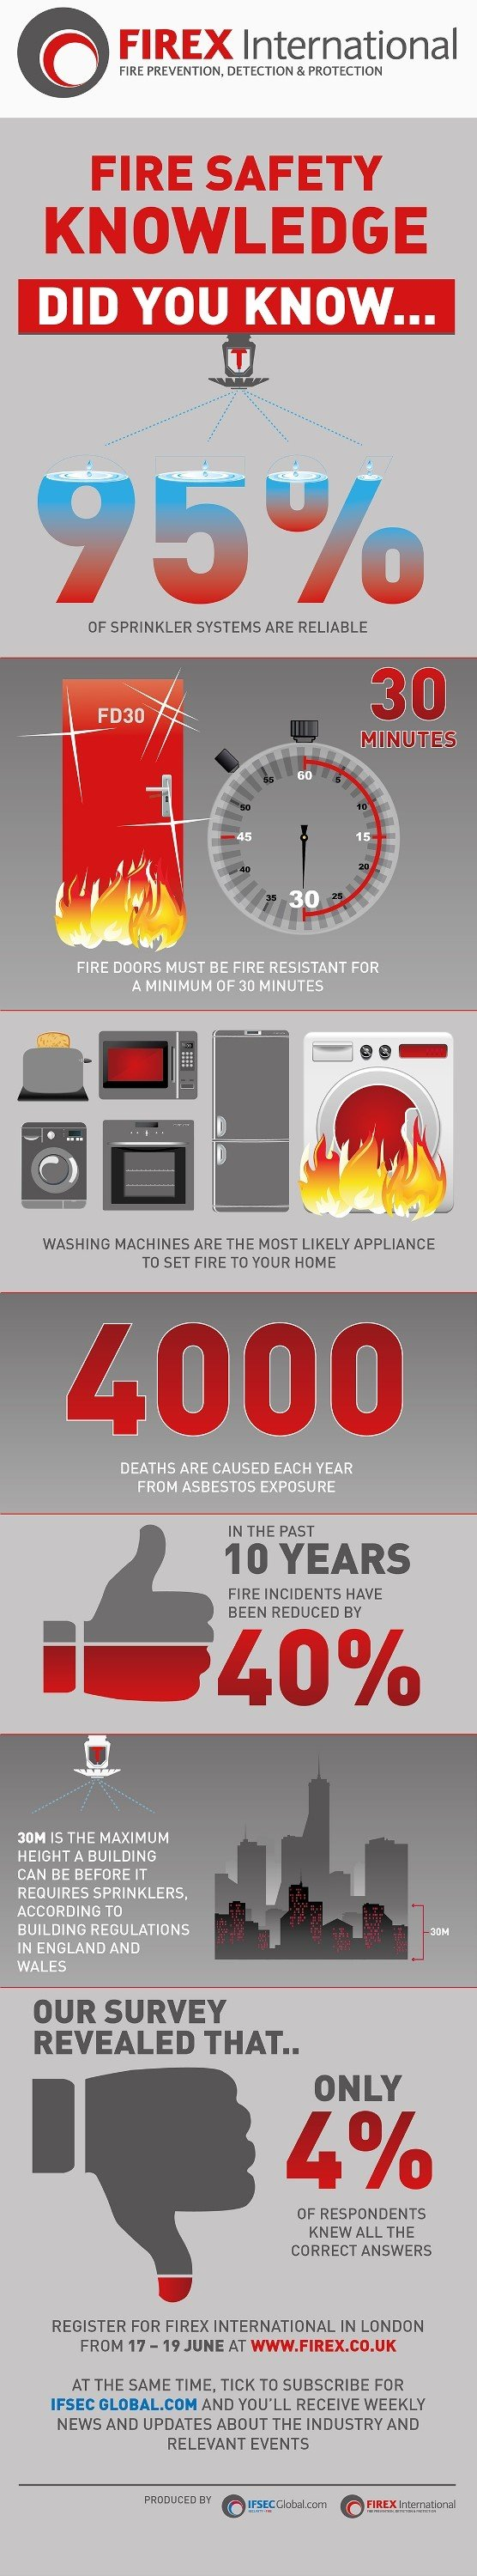 That's just one of the unnerving, reassuring, or simply fascinating facts  from the infographic below, based on a fire safety quiz held by FIREX ...